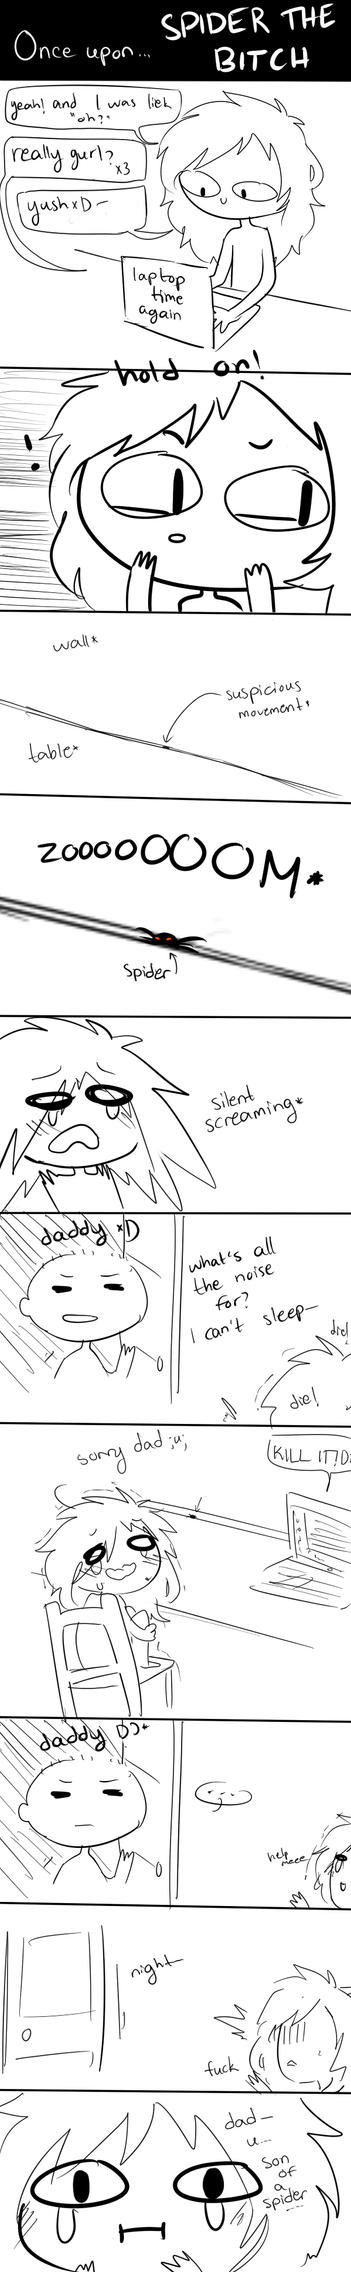 once upon...SPIDER the BITCH by Miiukka